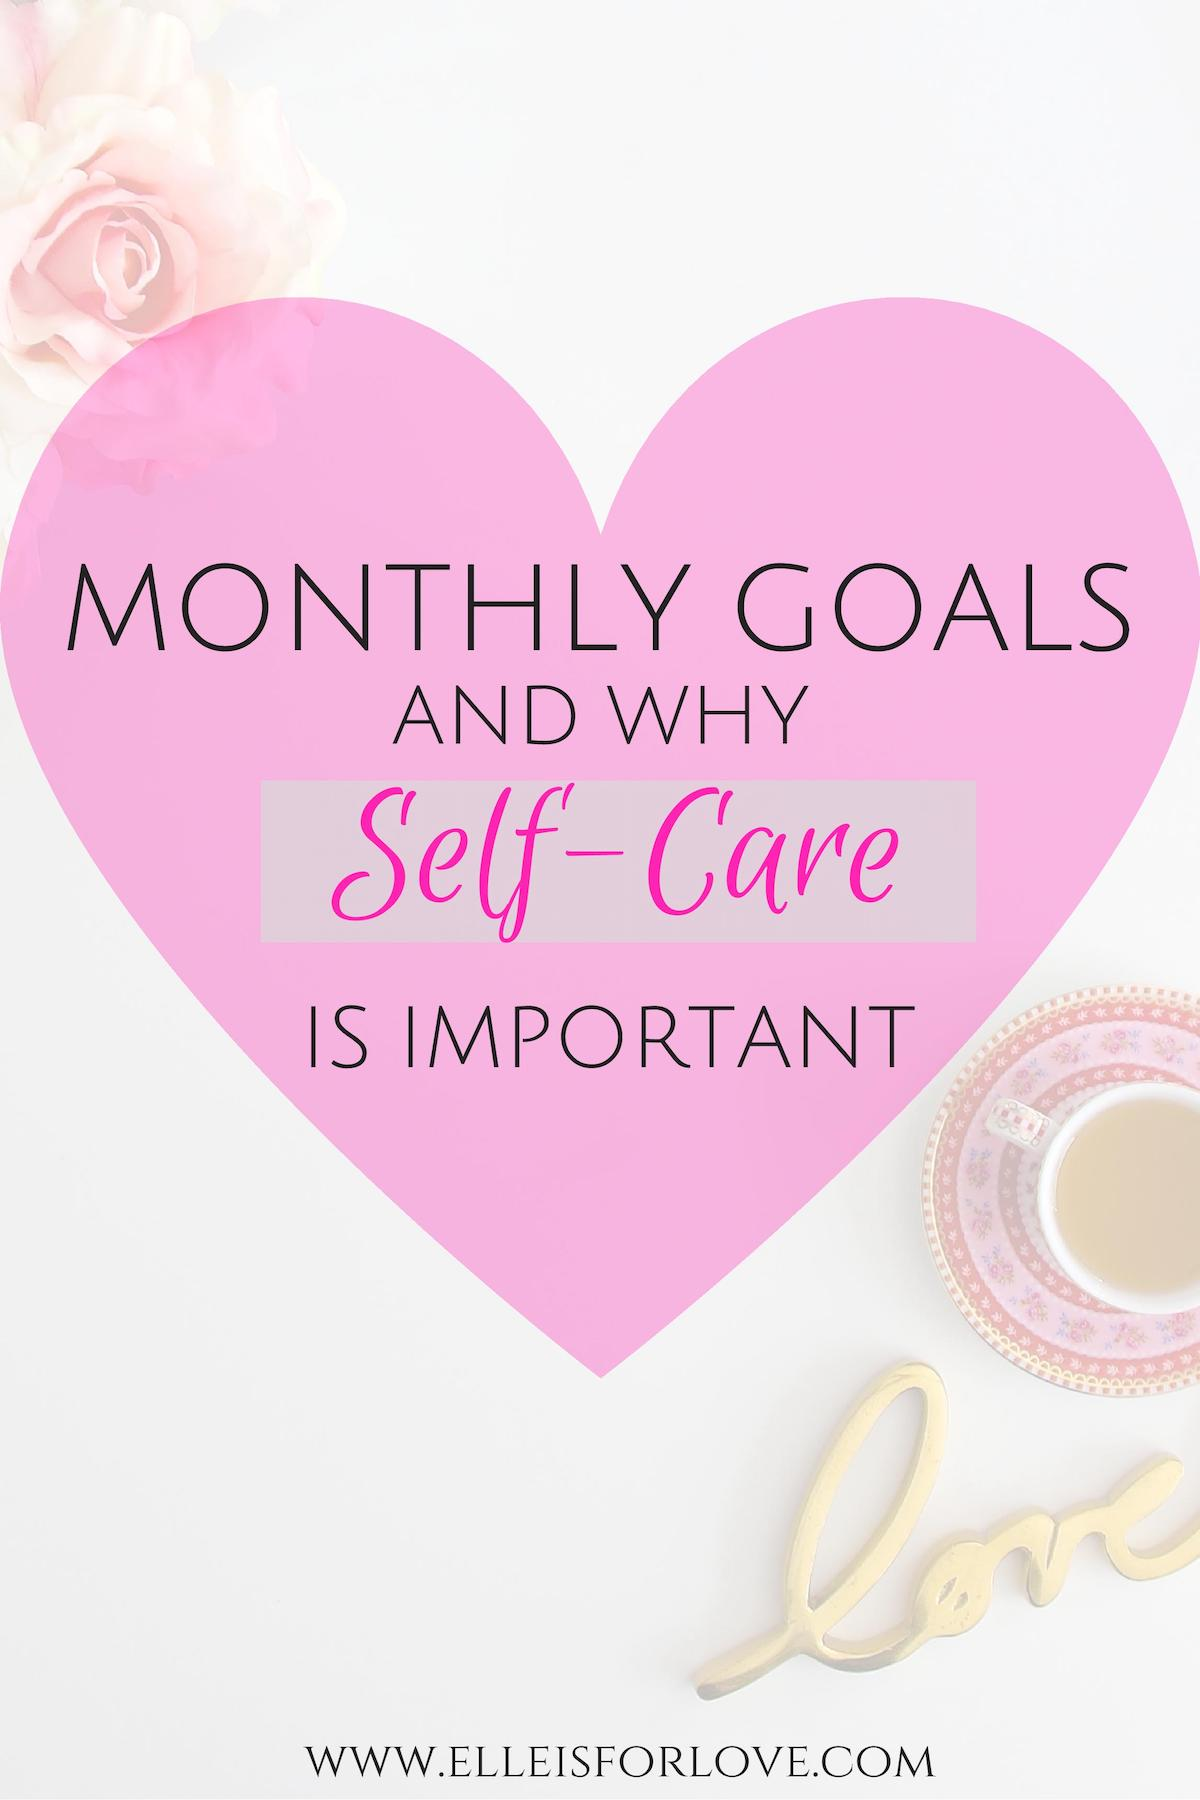 Monthly Goals and Why Self-Care is so Important